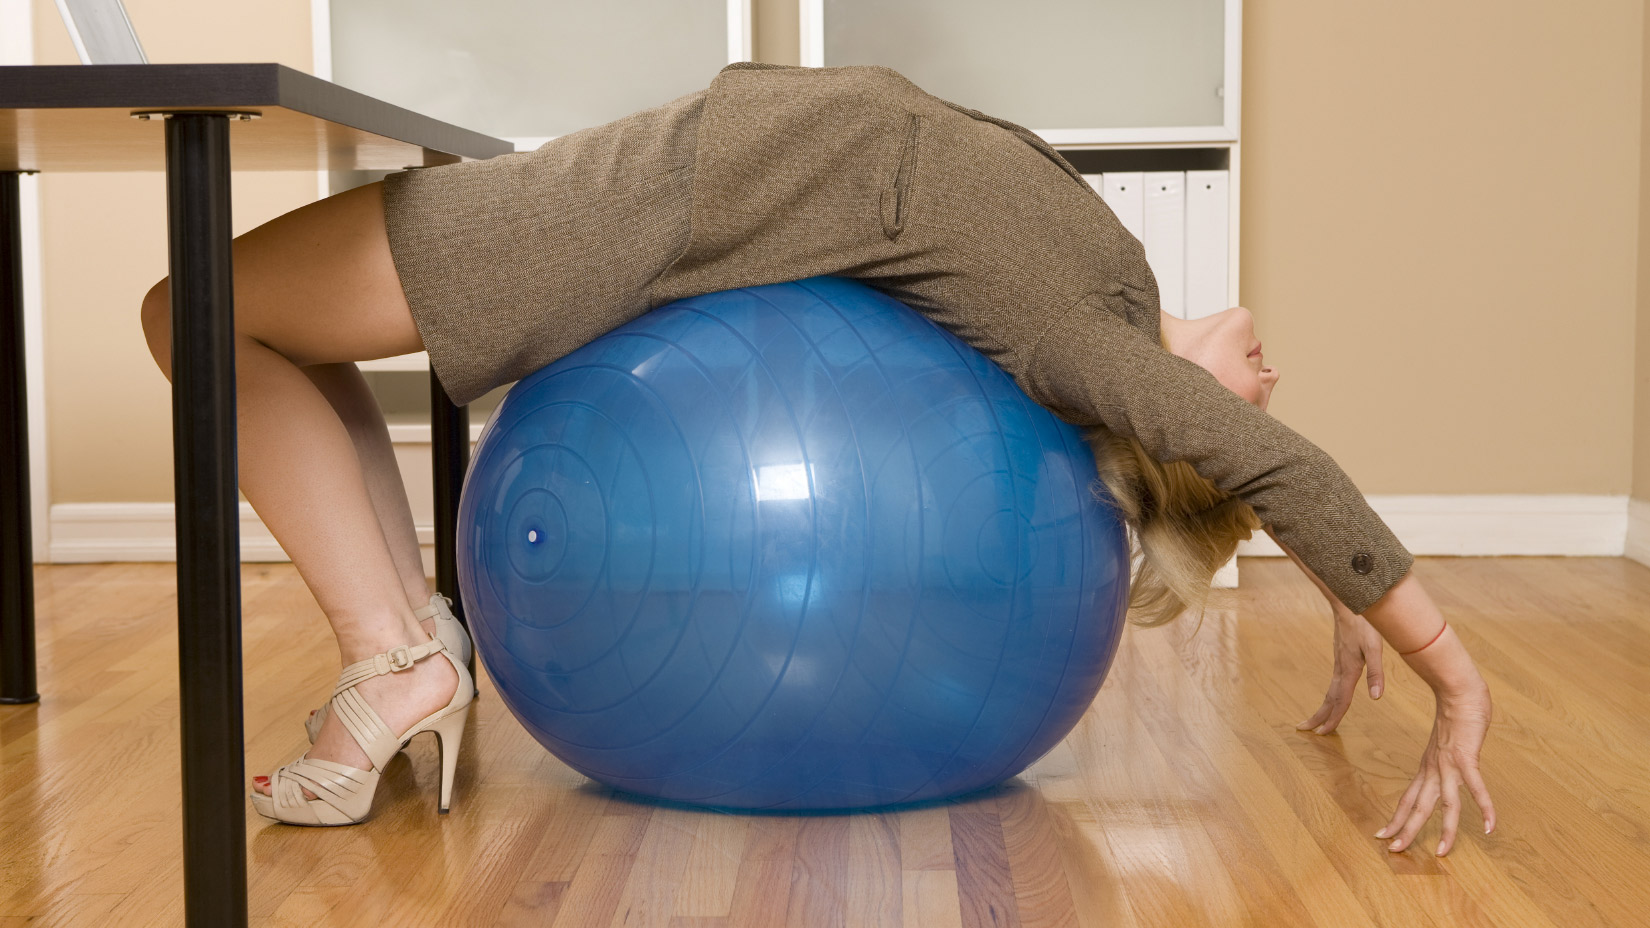 yoga ball chair exercises difference between shower and tub transfer bench should you use exercise instead of office